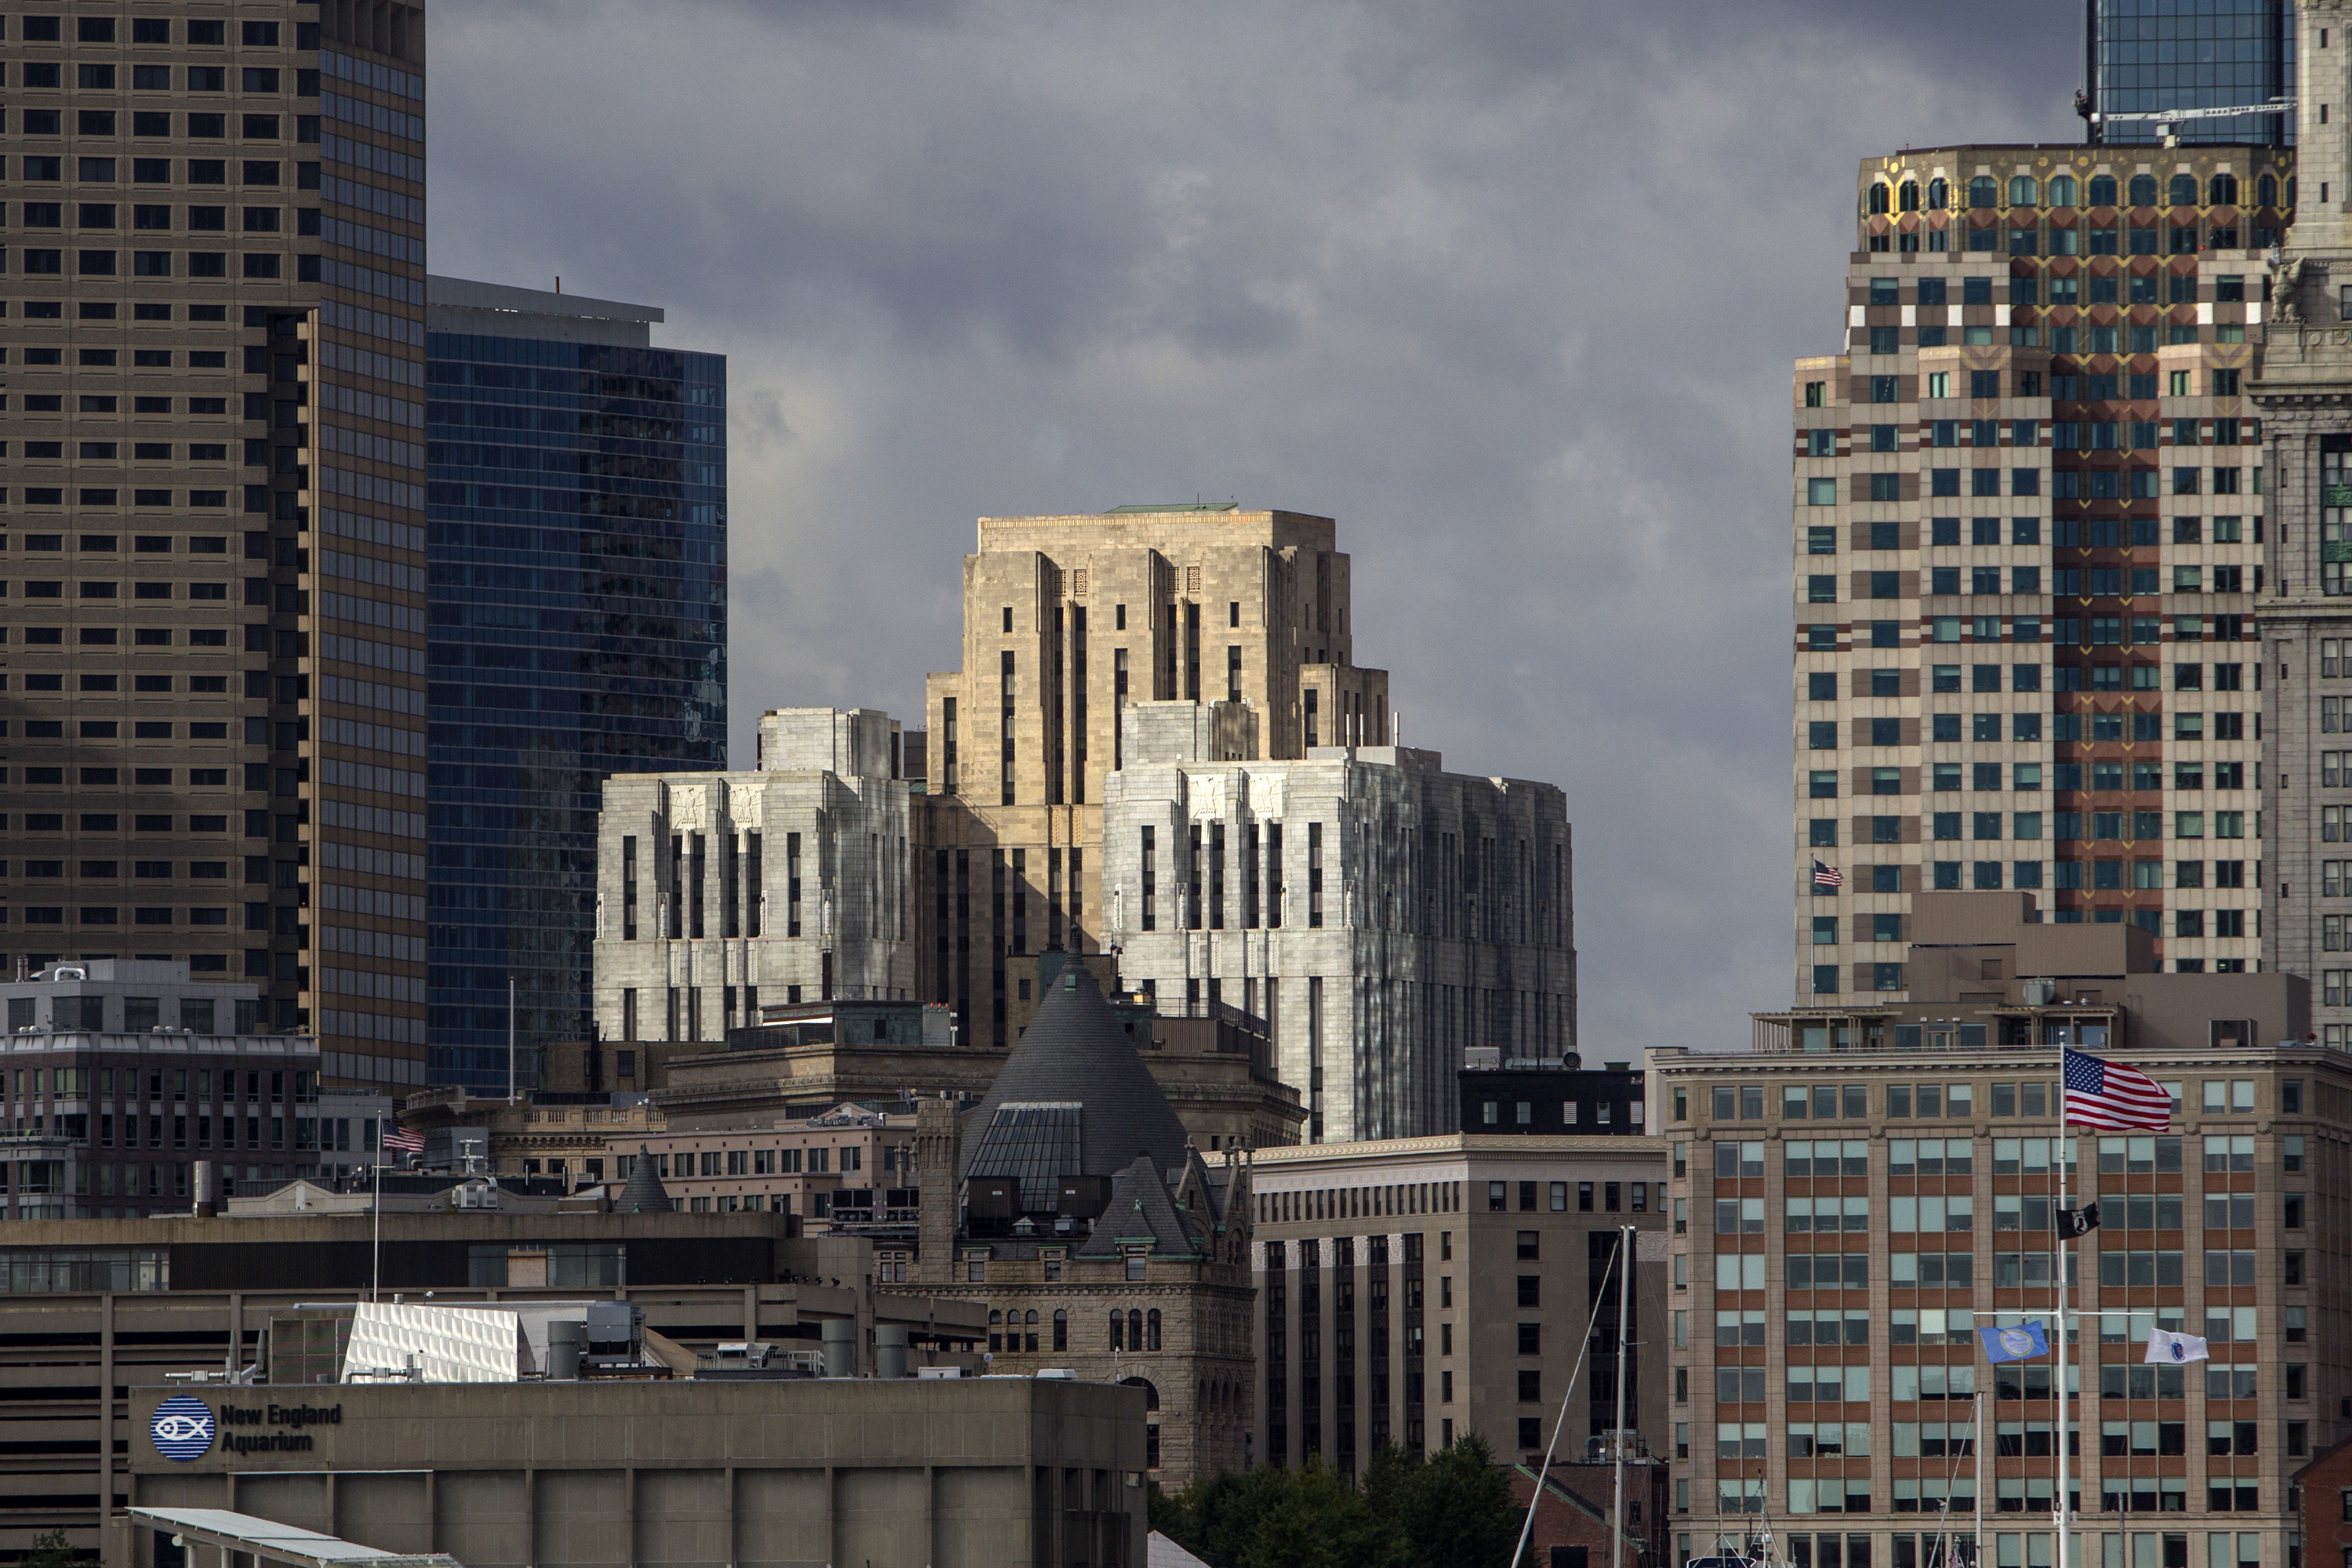 Buildings stand in the city skyline in Boston, Massachusetts, U.S., on Tuesday, Oct. 7, 2014.